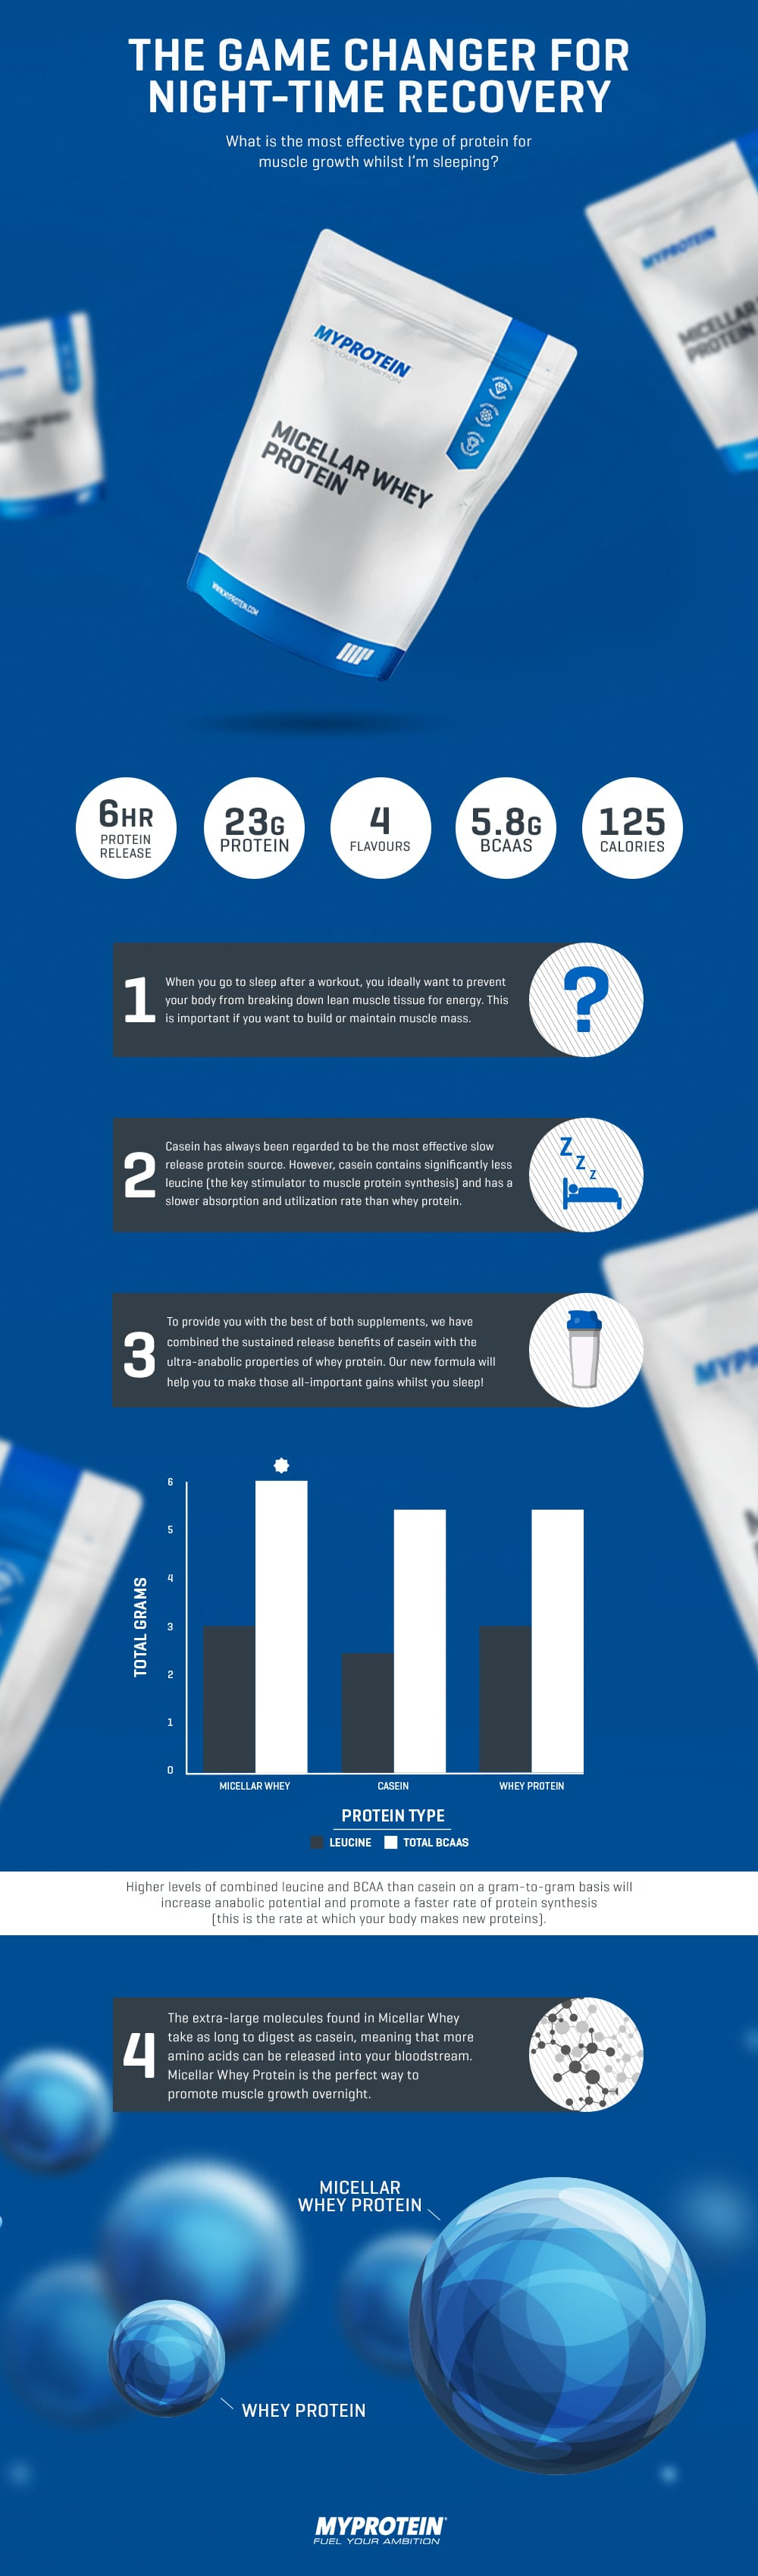 Protein Infographic-7 (2)